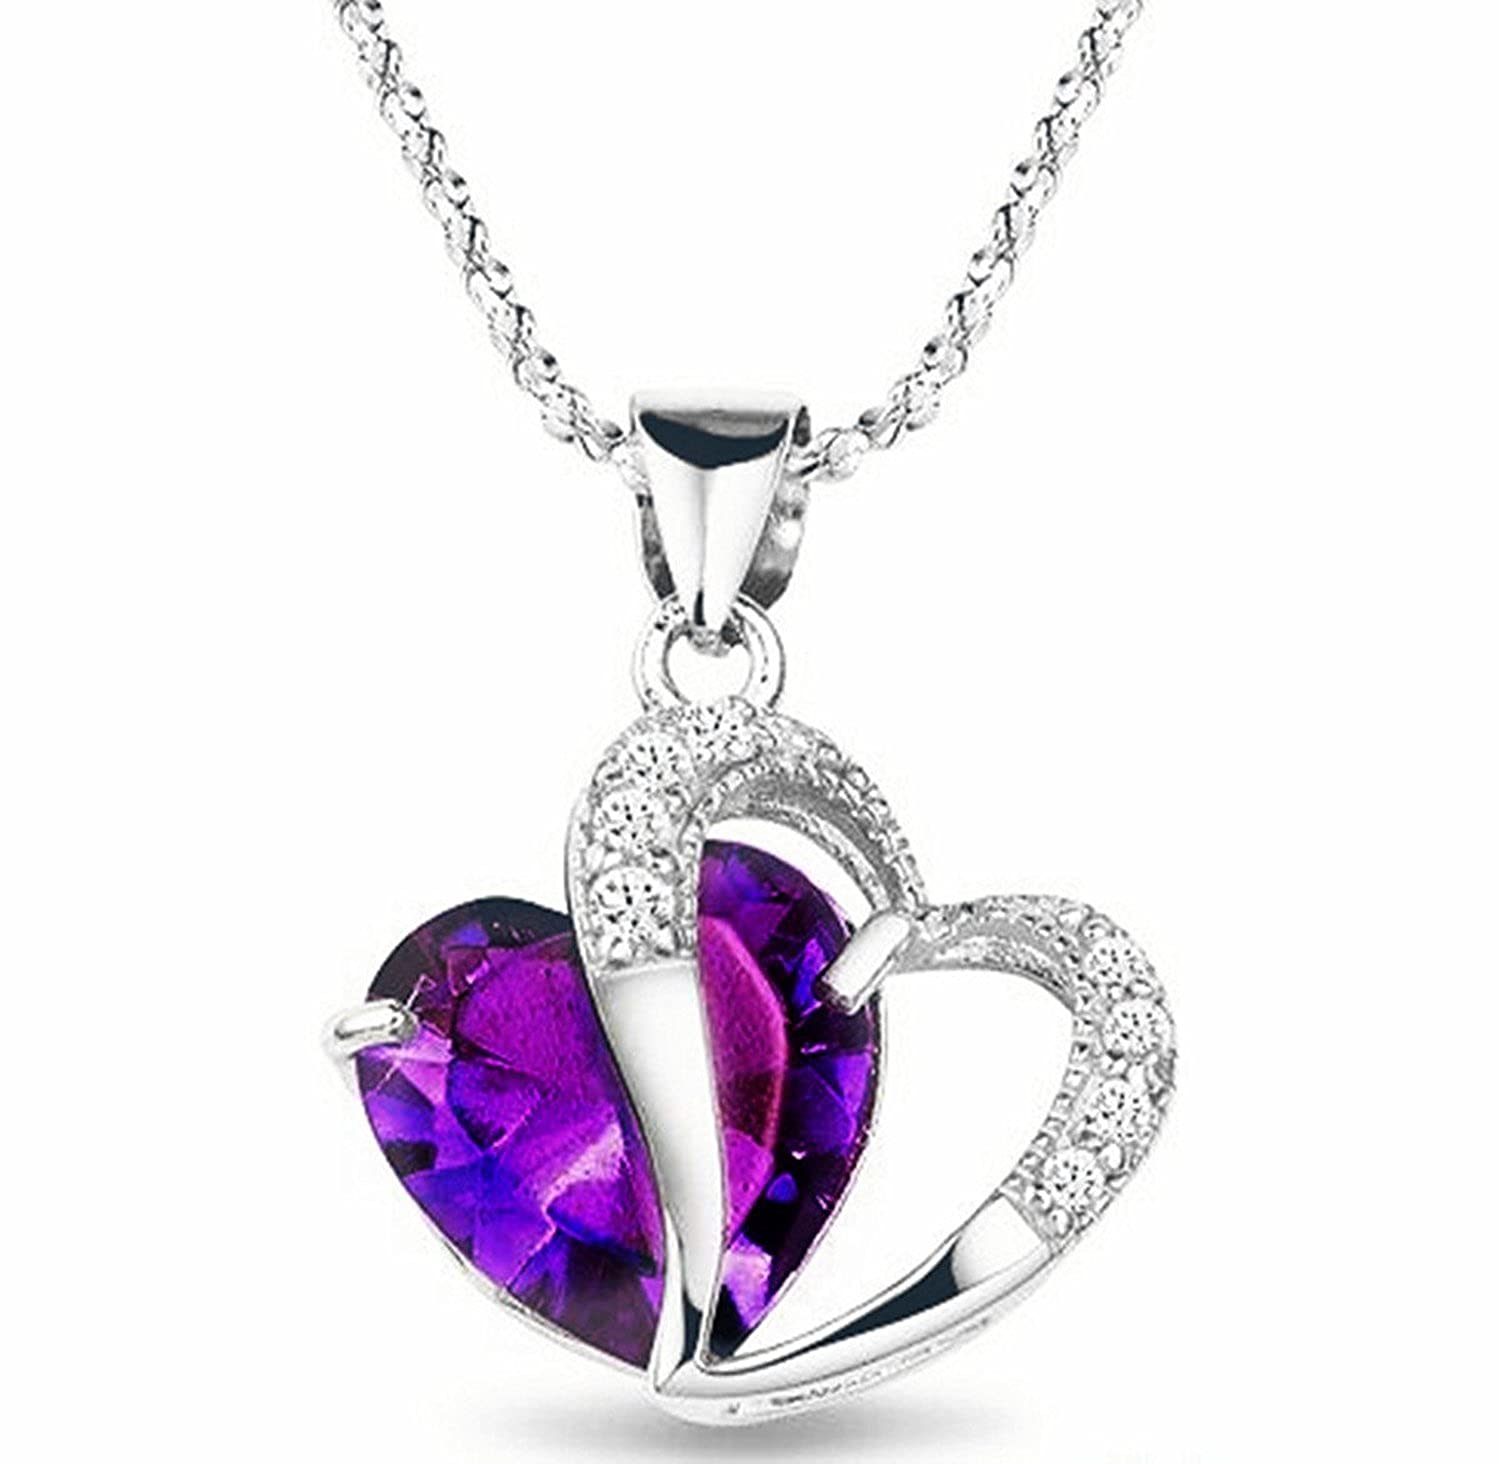 buy dark charm necklace glow pendant free in products get crystalheart the purple heart crystal